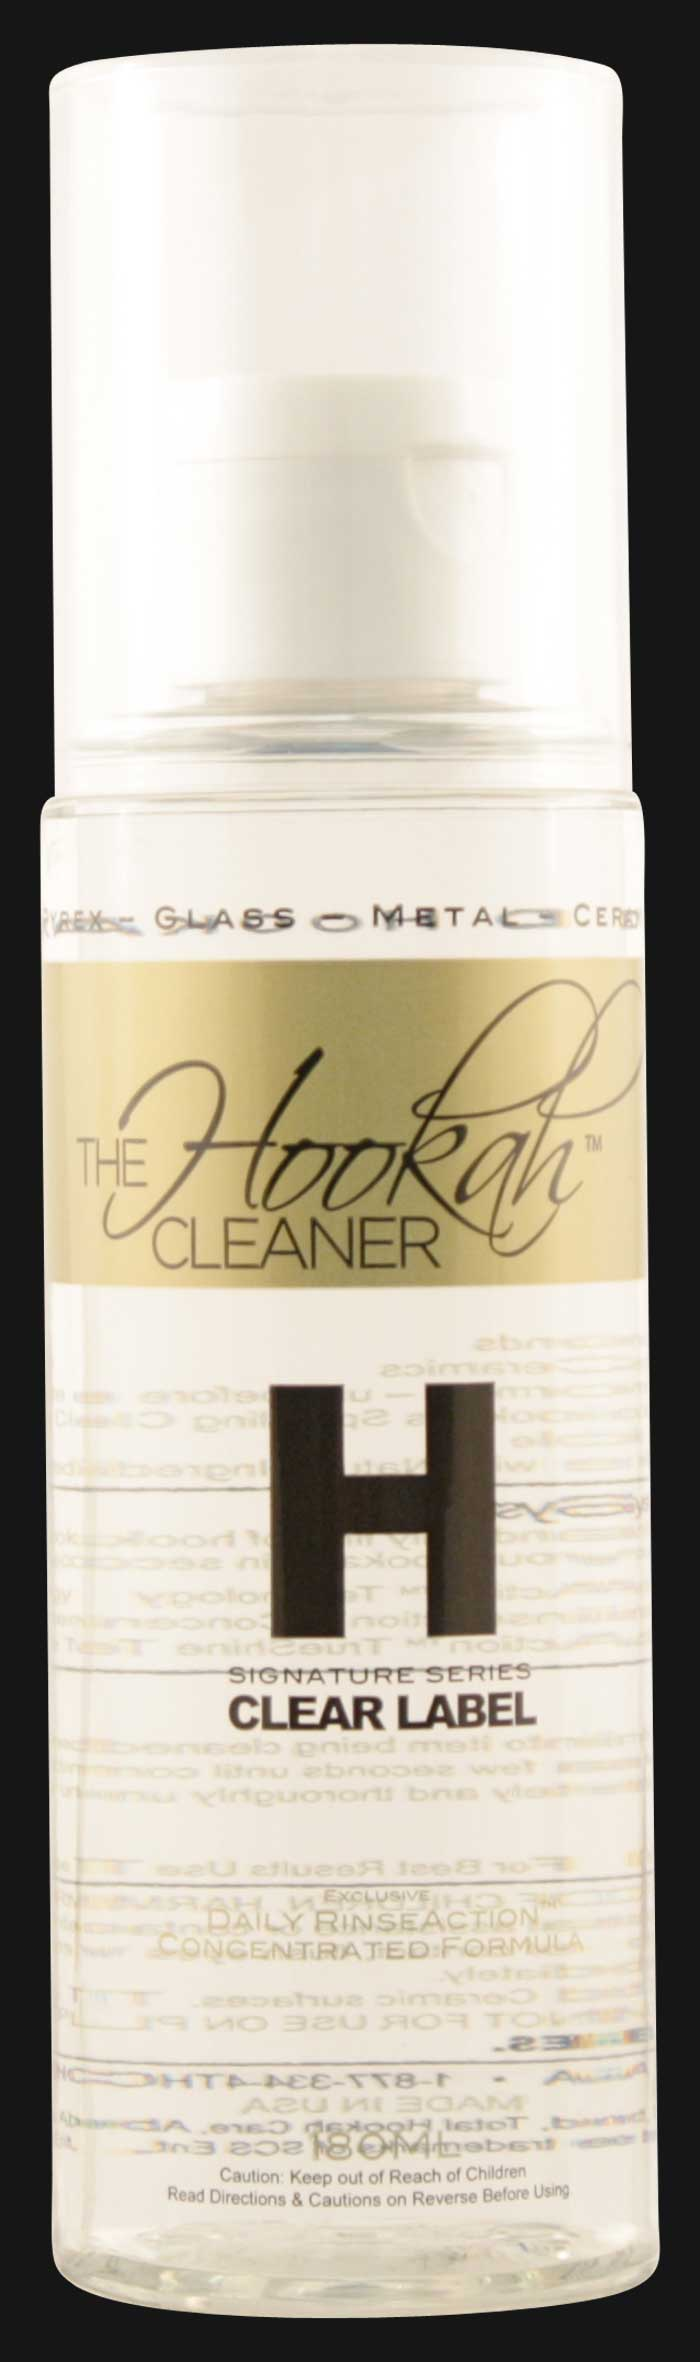 The Hookah Cleaner - Clear Label H Concentrated Pipe Cleaner 180 ML.